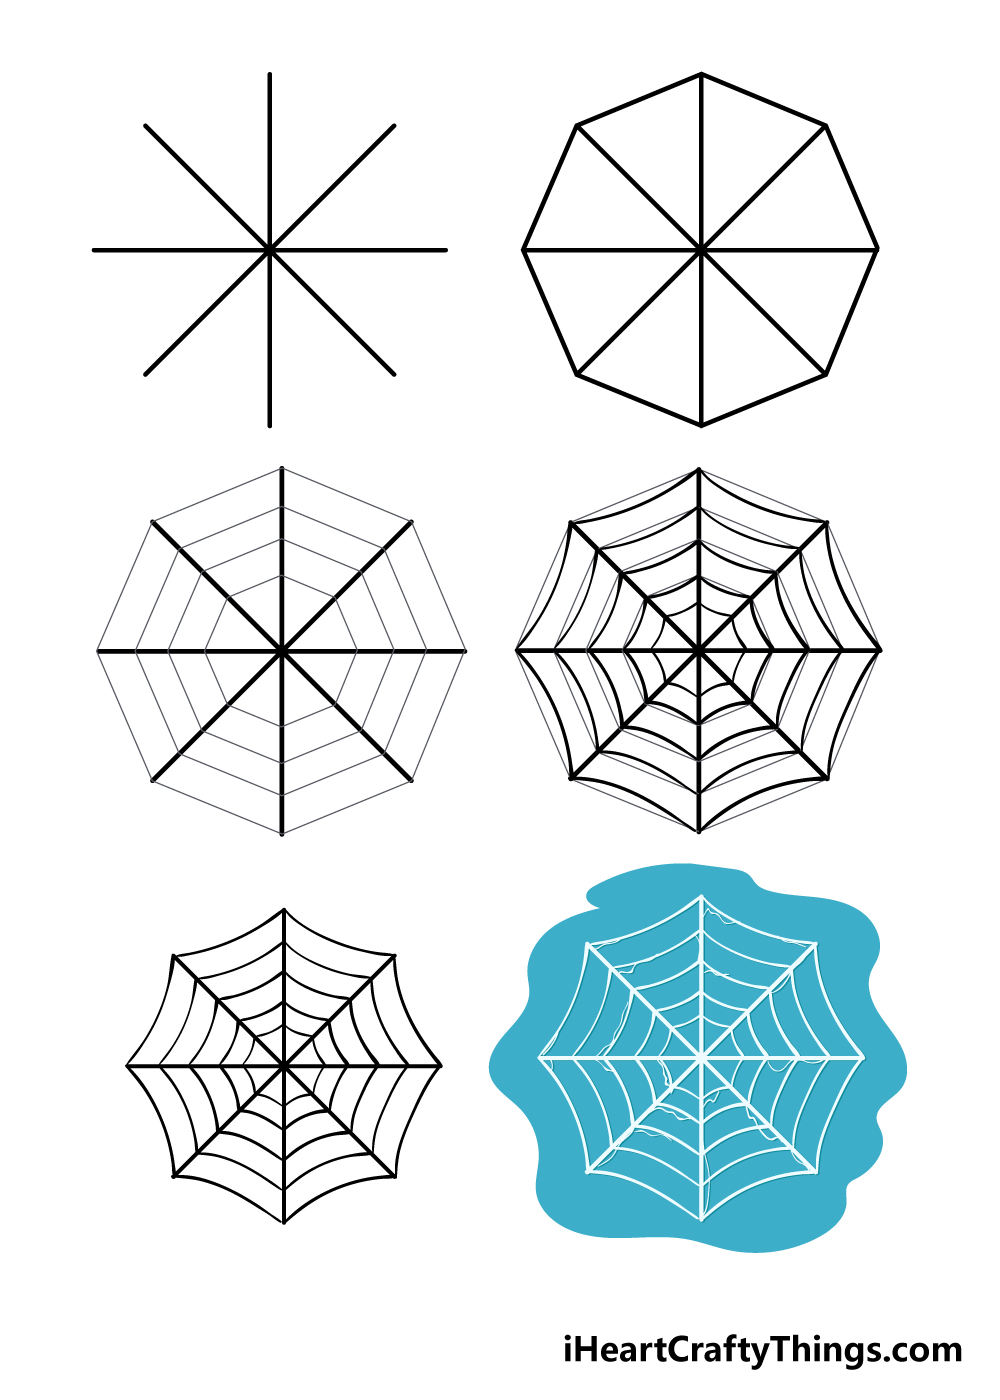 how to draw spiderweb in 6 steps